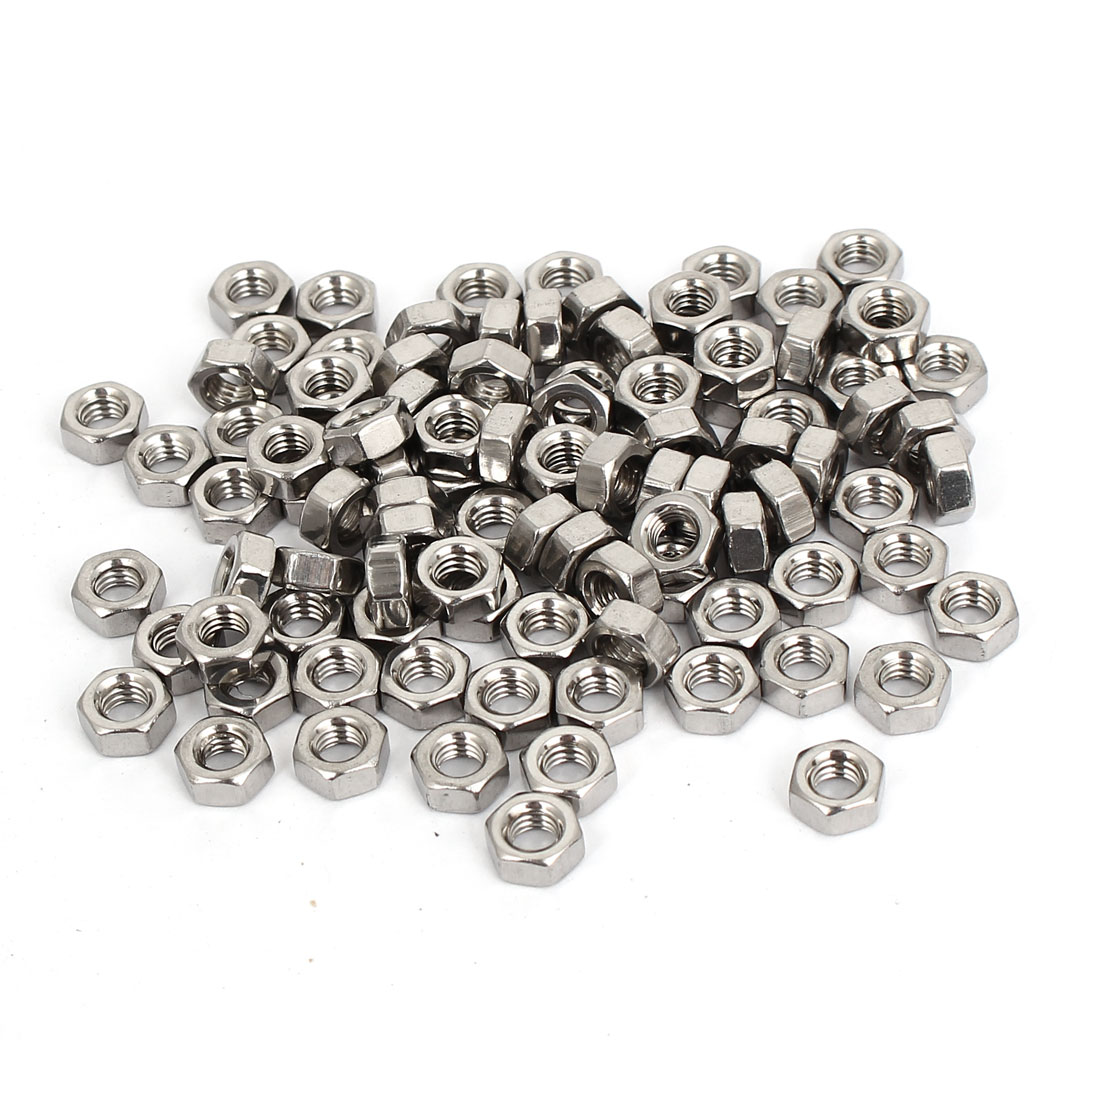 100pcs M4 Metric Machine Stainless Steel Hex Hexagon Nuts for Screws Bolts